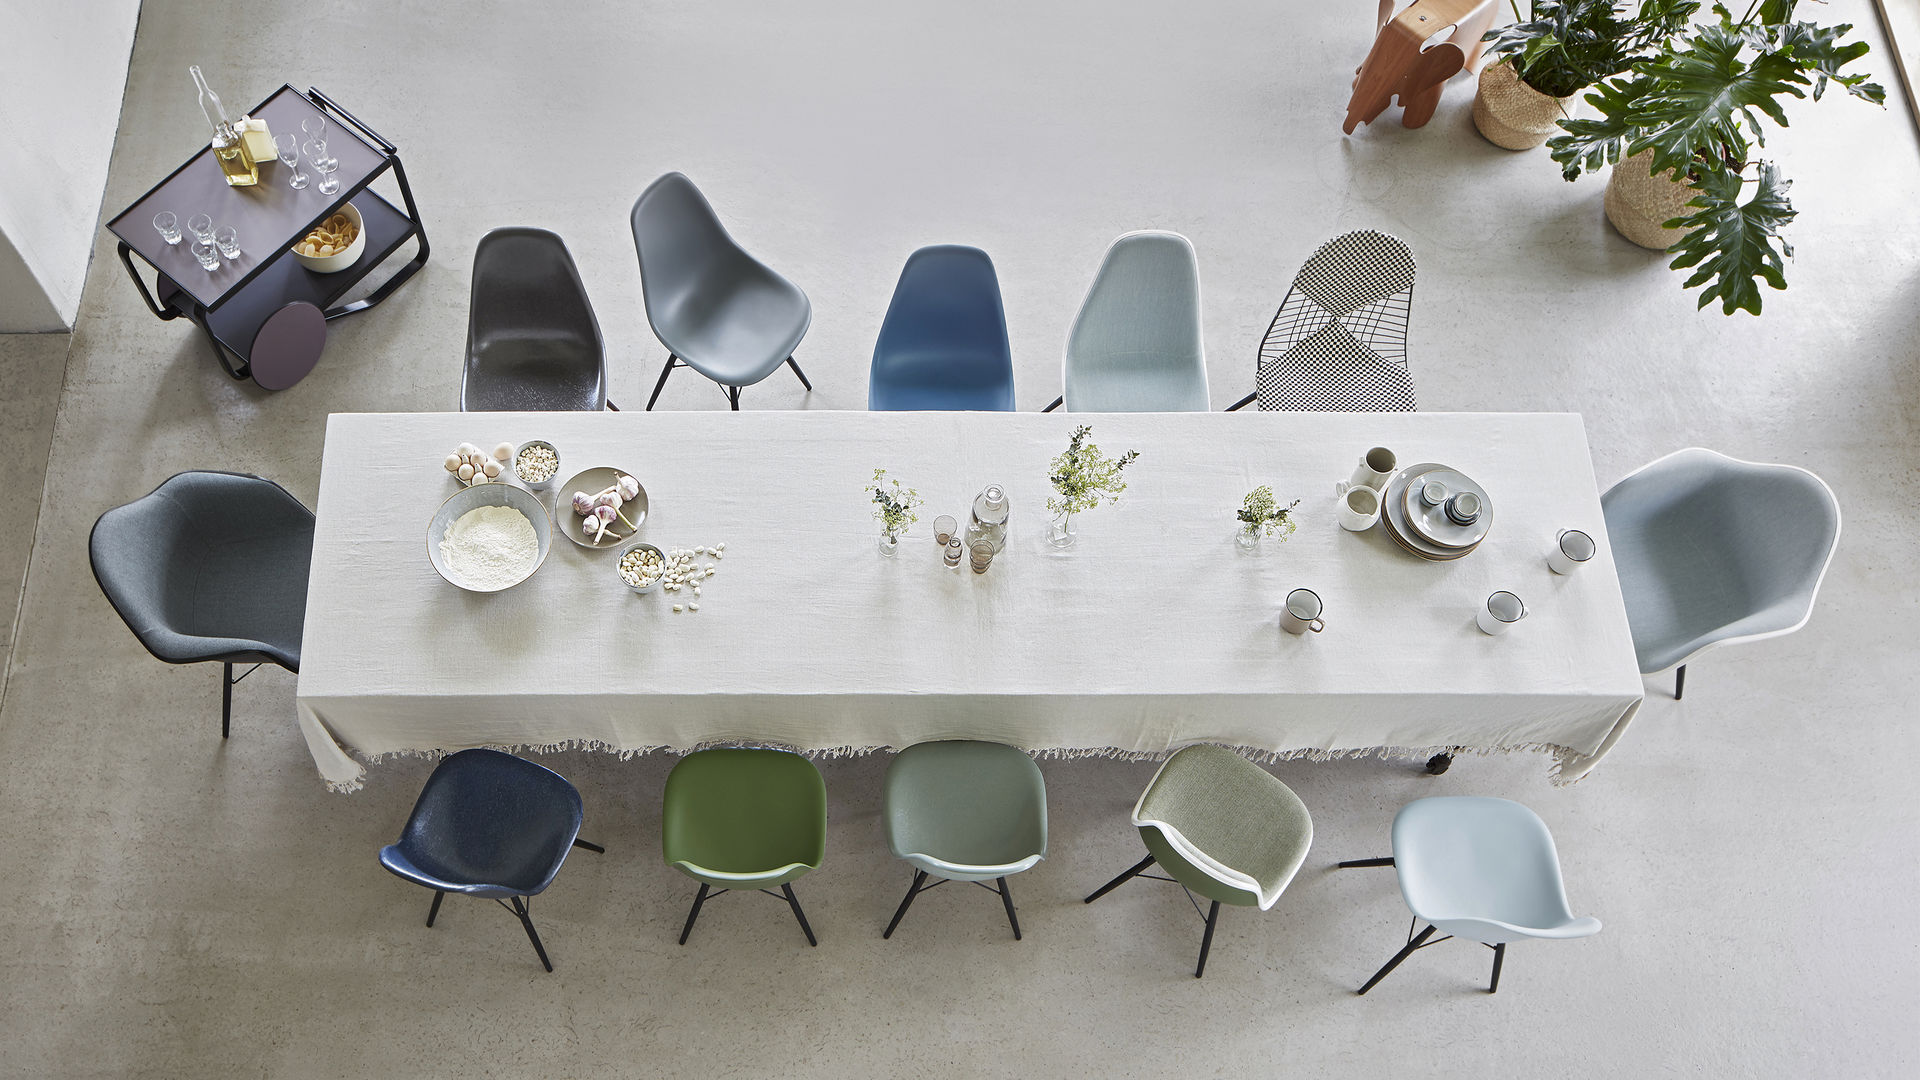 Eames Plastic Side Chair DSW Eames Plastic Armchair_Web_16-9